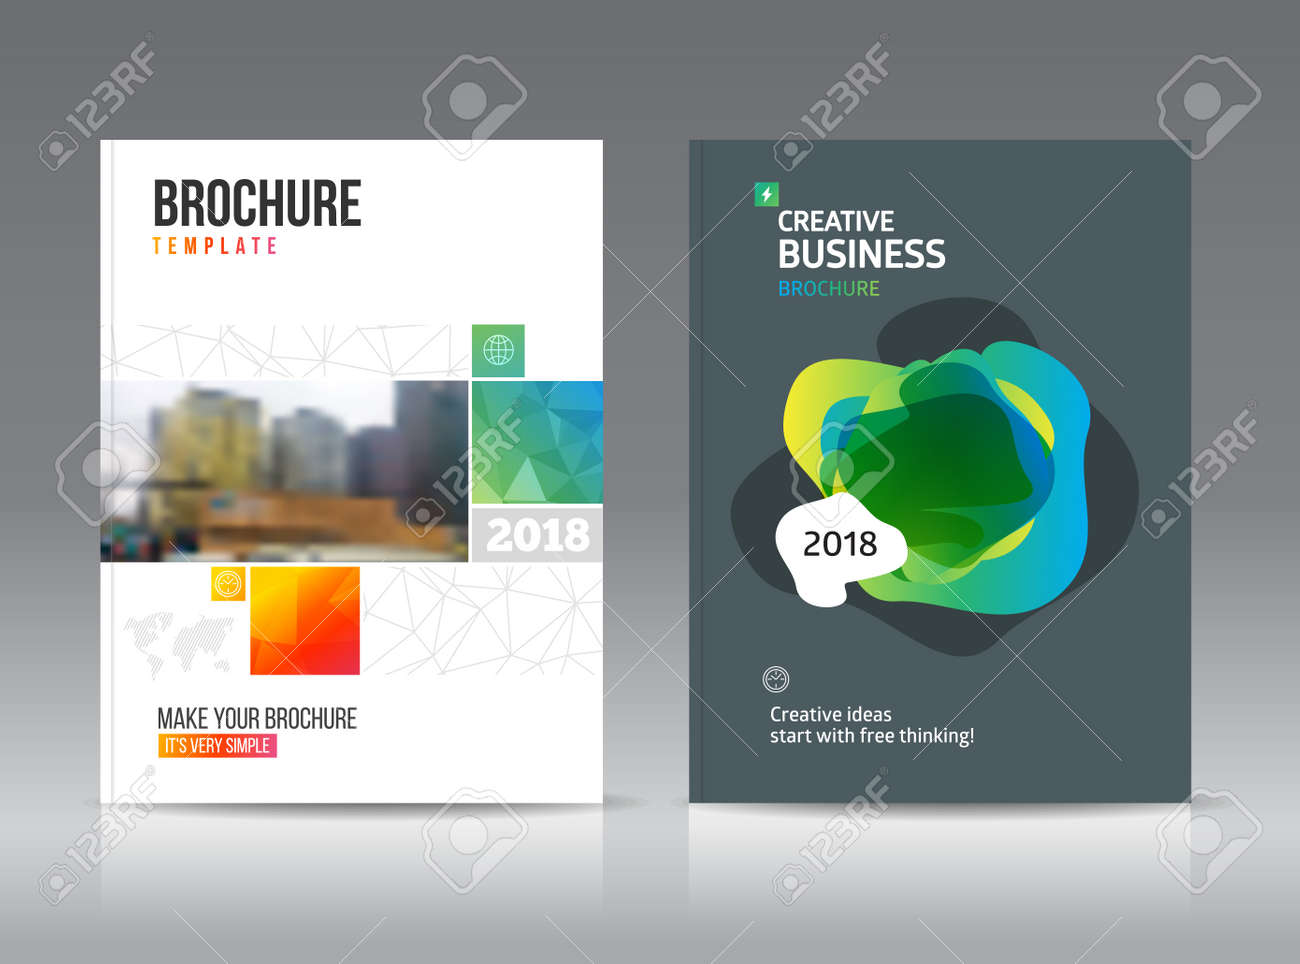 abstract business brochure design vector template in a4 size for document or book cover